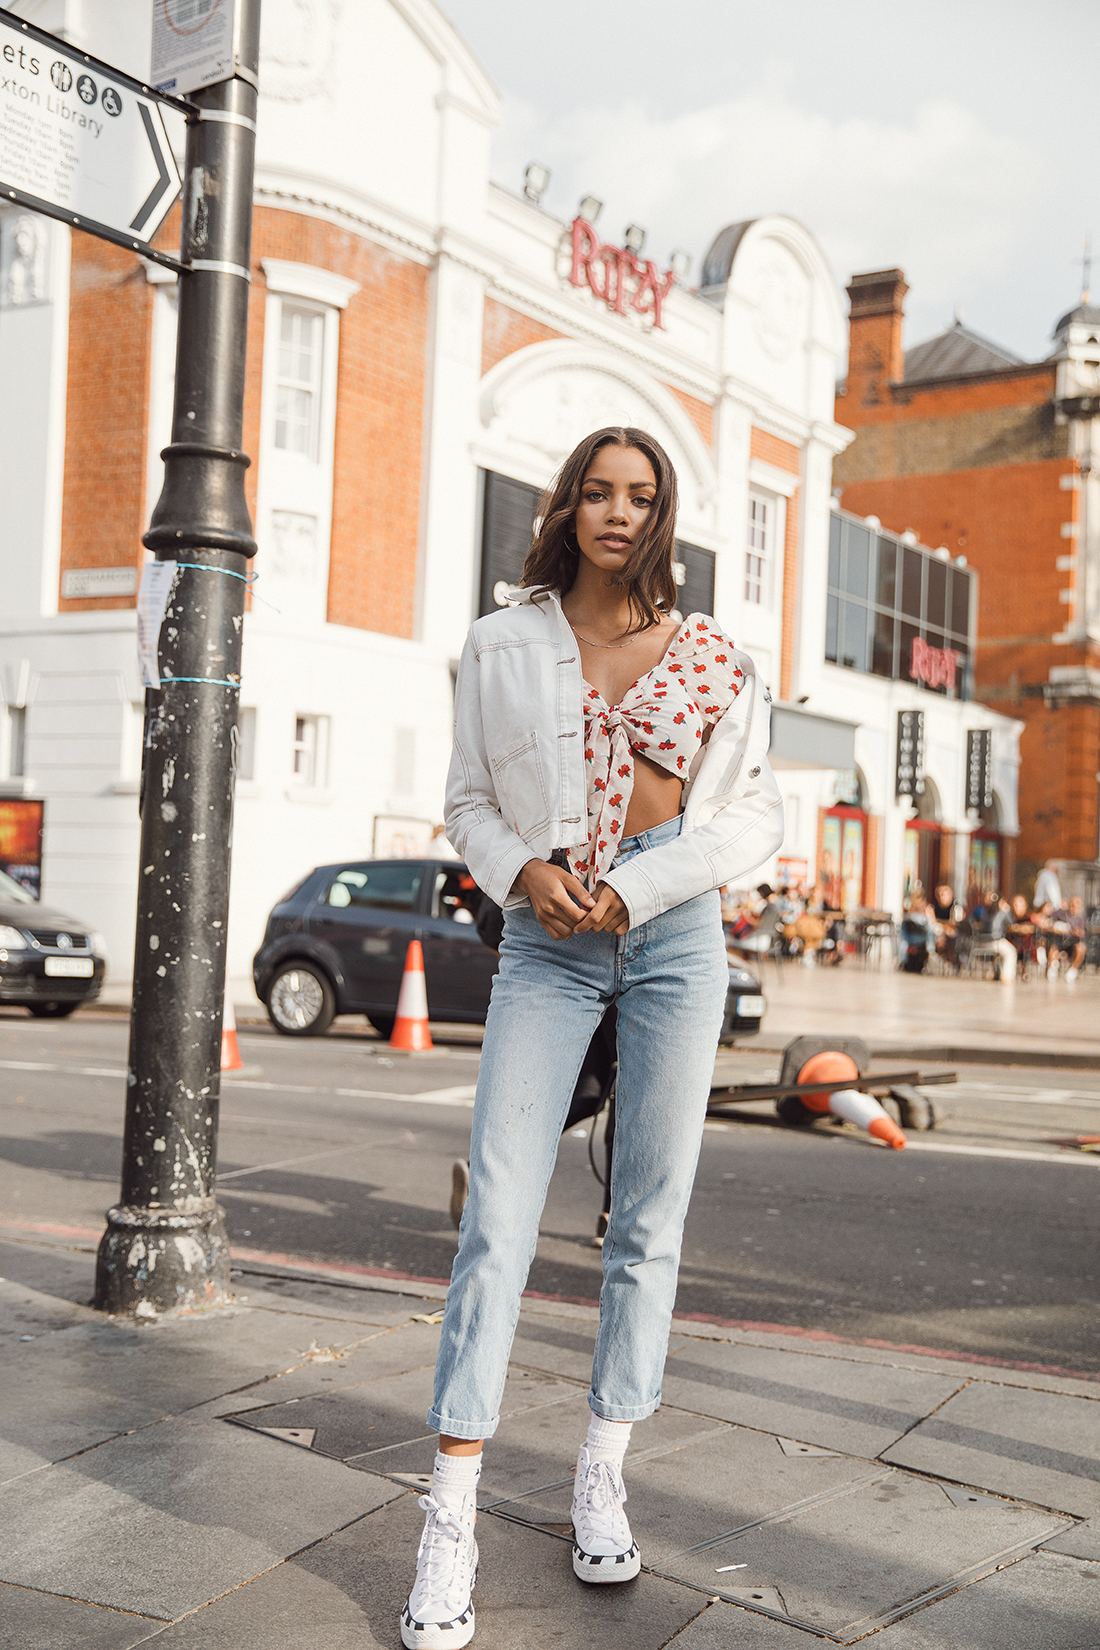 Melody @ The Squad fashion shoot in Brixton by London photographer Ailera Stone